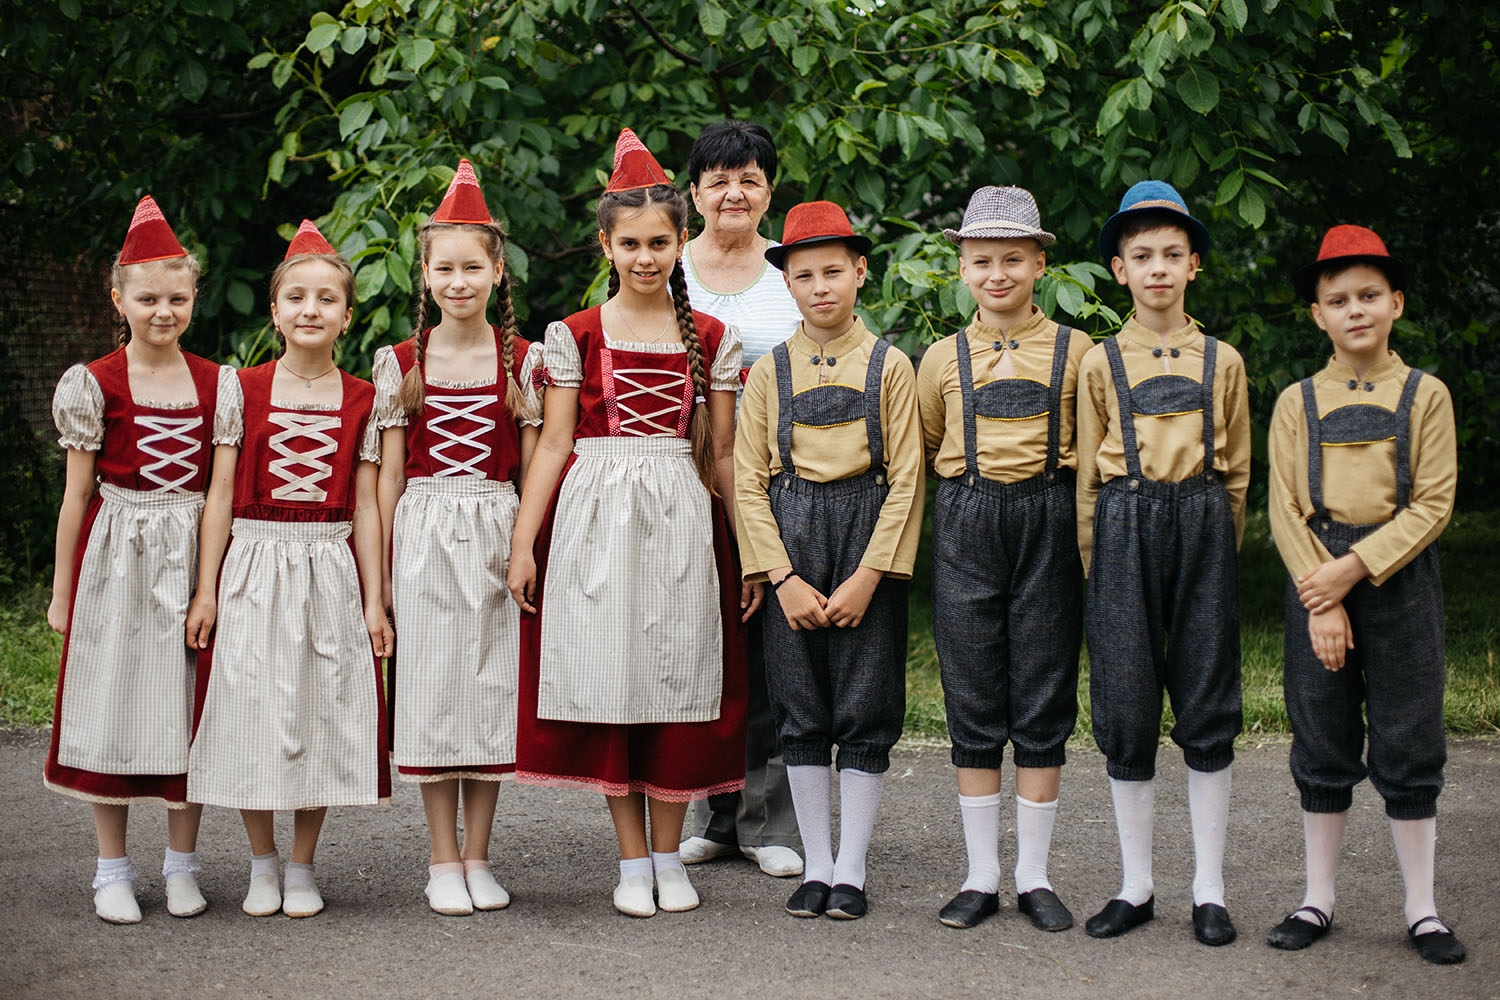 Germans of Ukraine. Who are they?